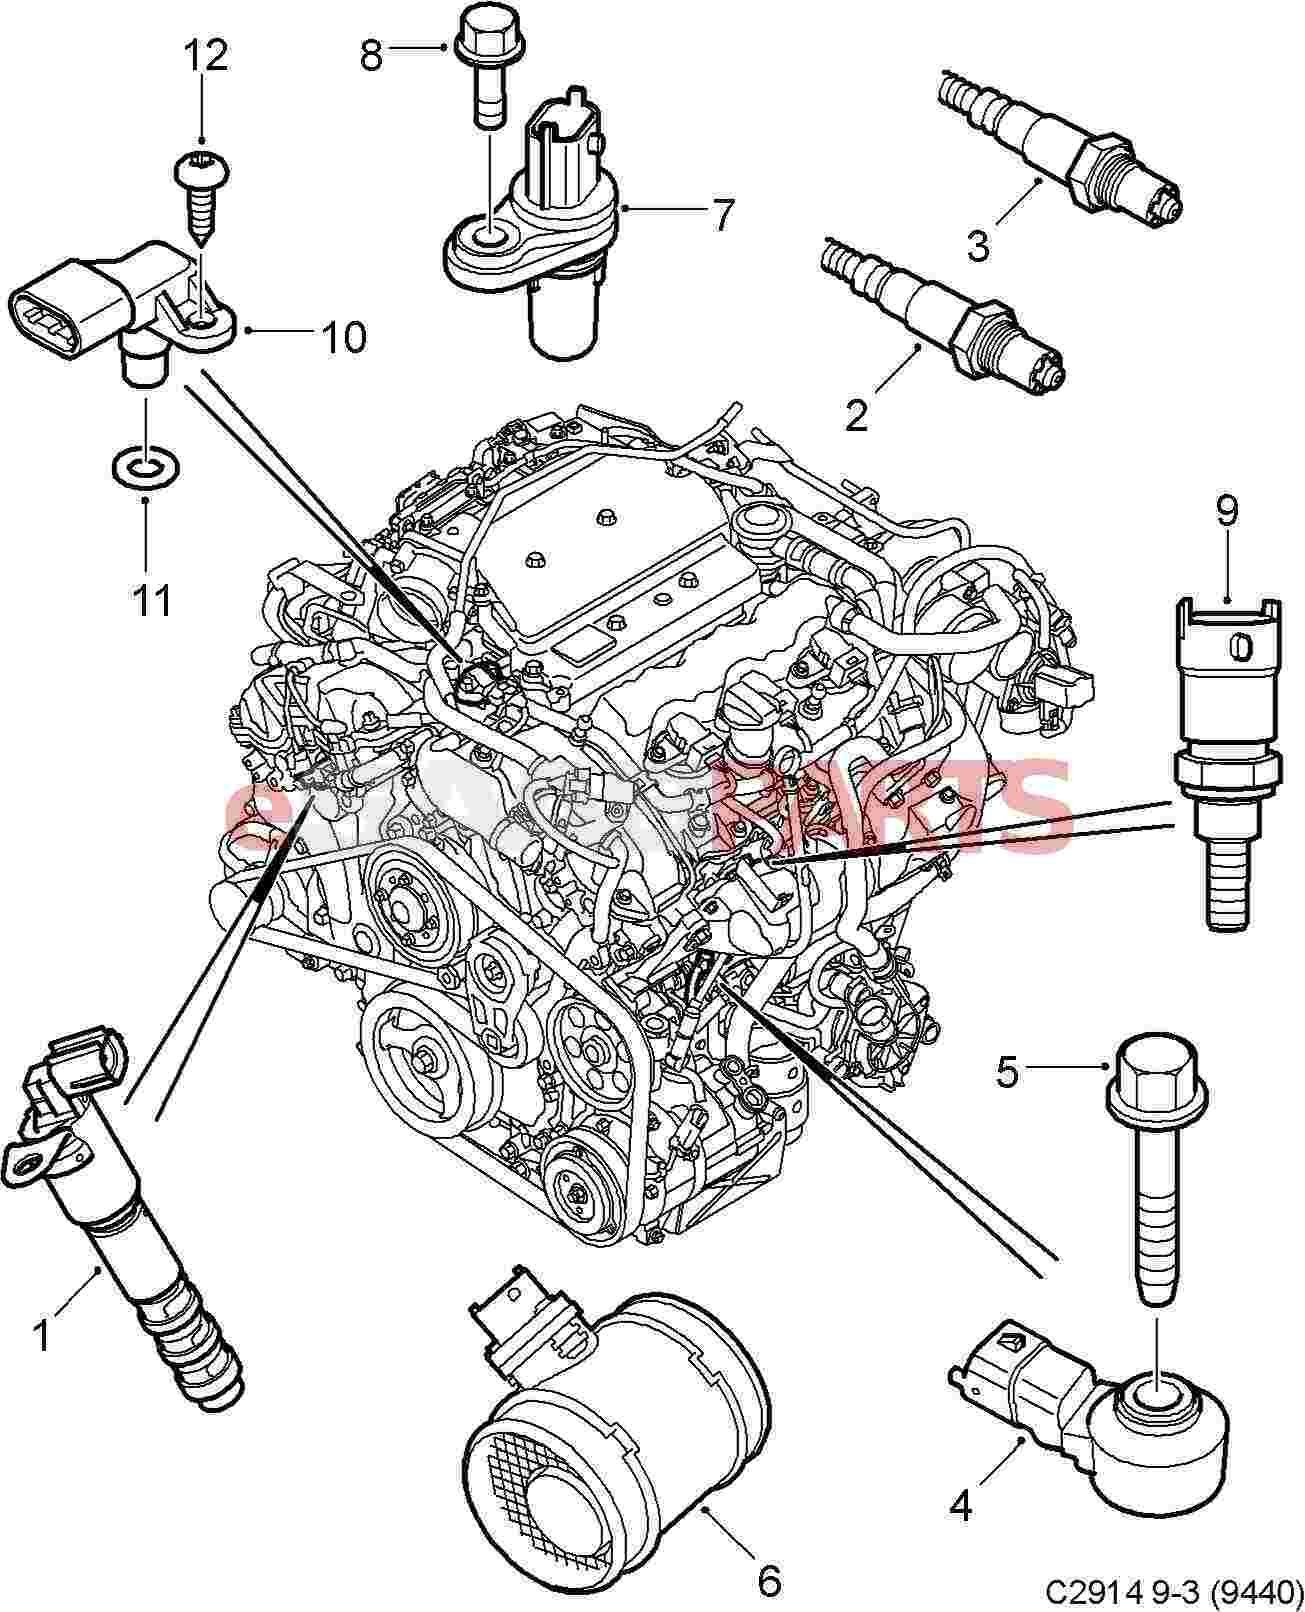 2004 saab 9 5 engine diagram